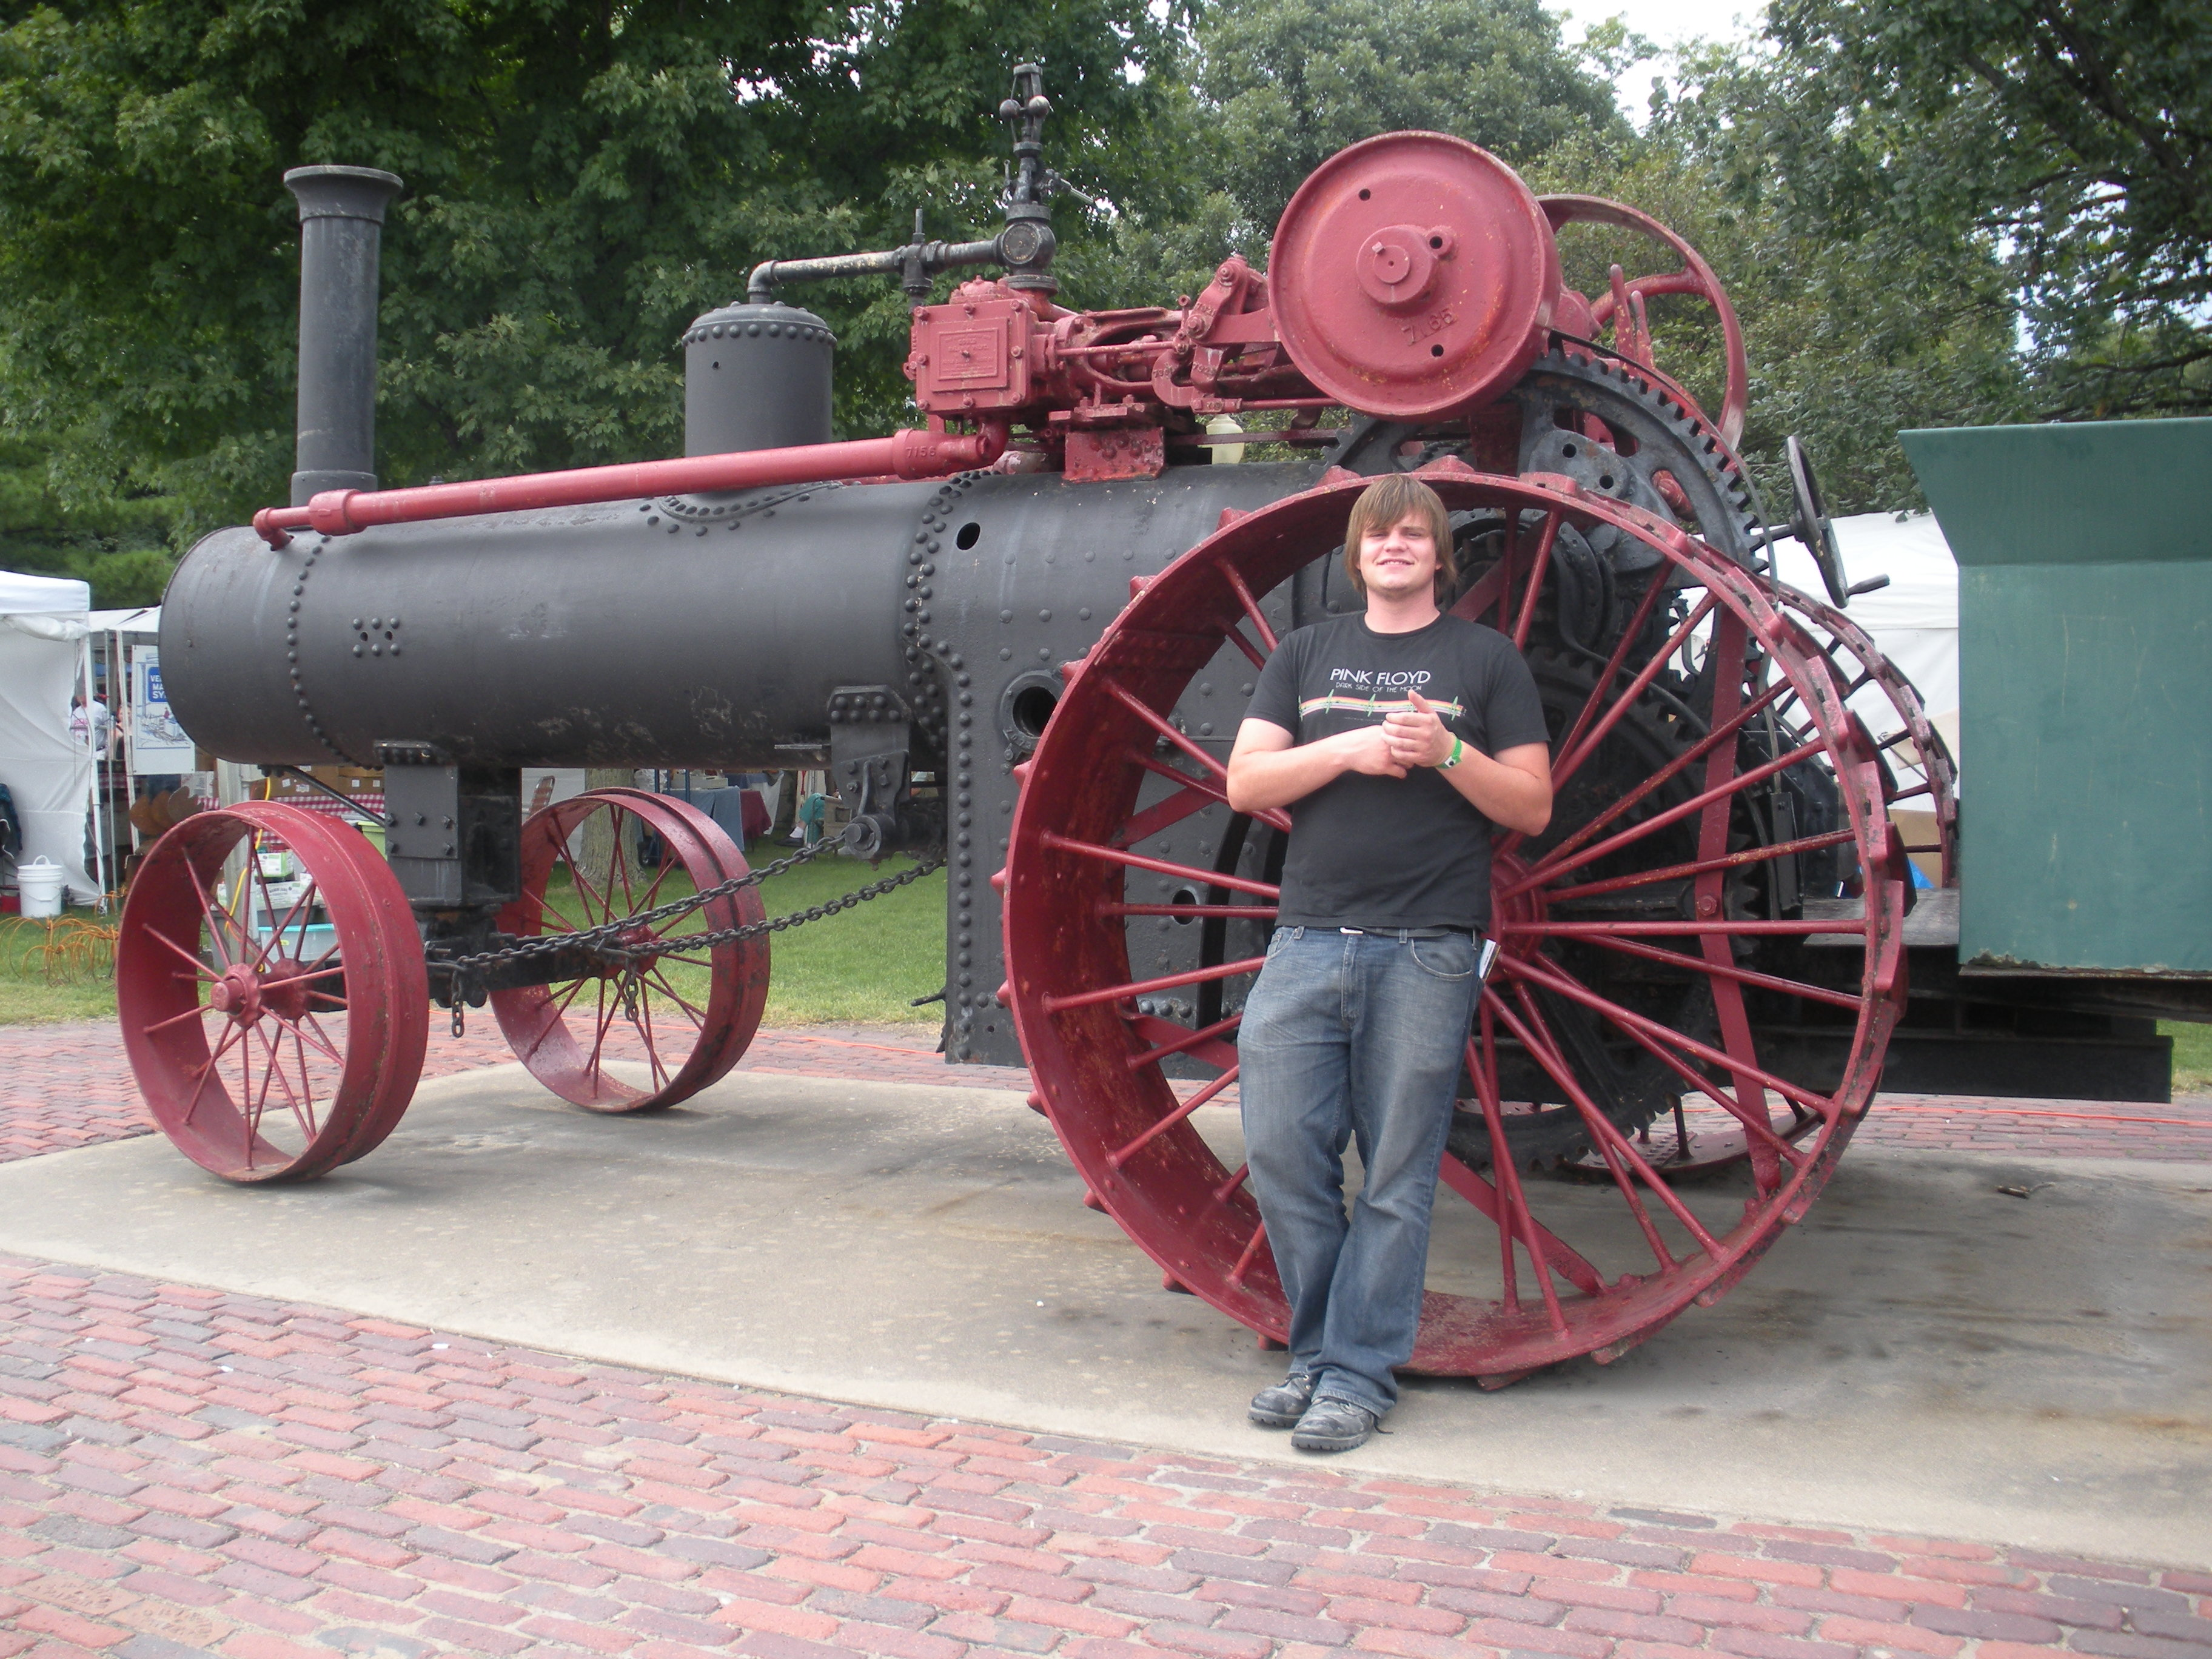 And here is Tony with a very large threshing machine, the main reason for the event!